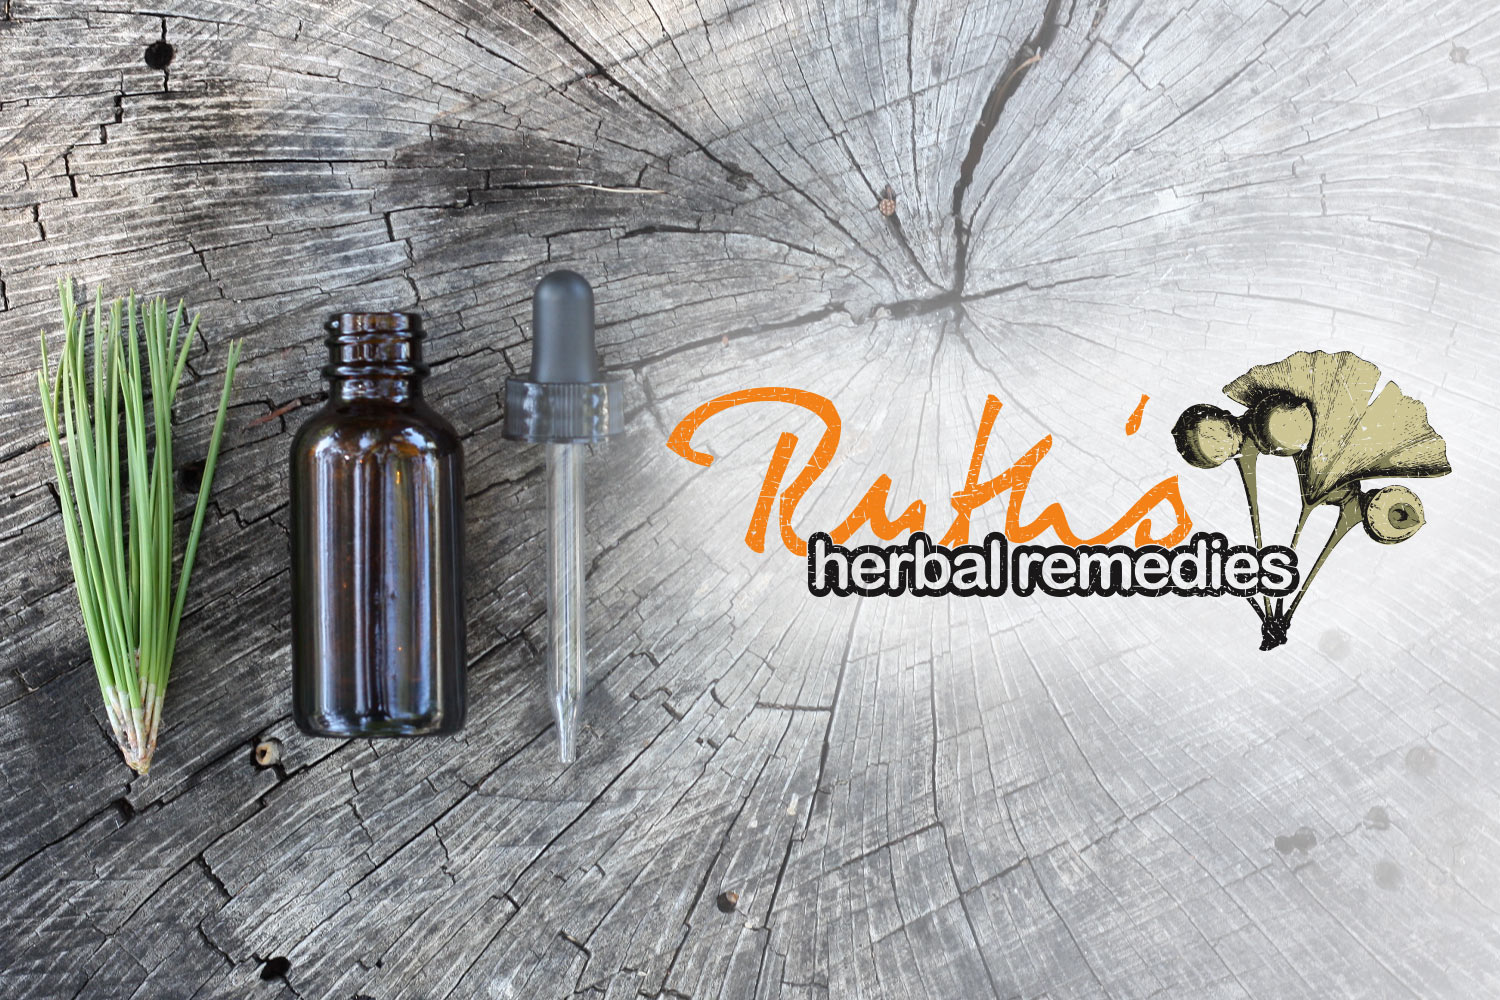 Ruth's Herbal Remedies - Logo and Identity Design